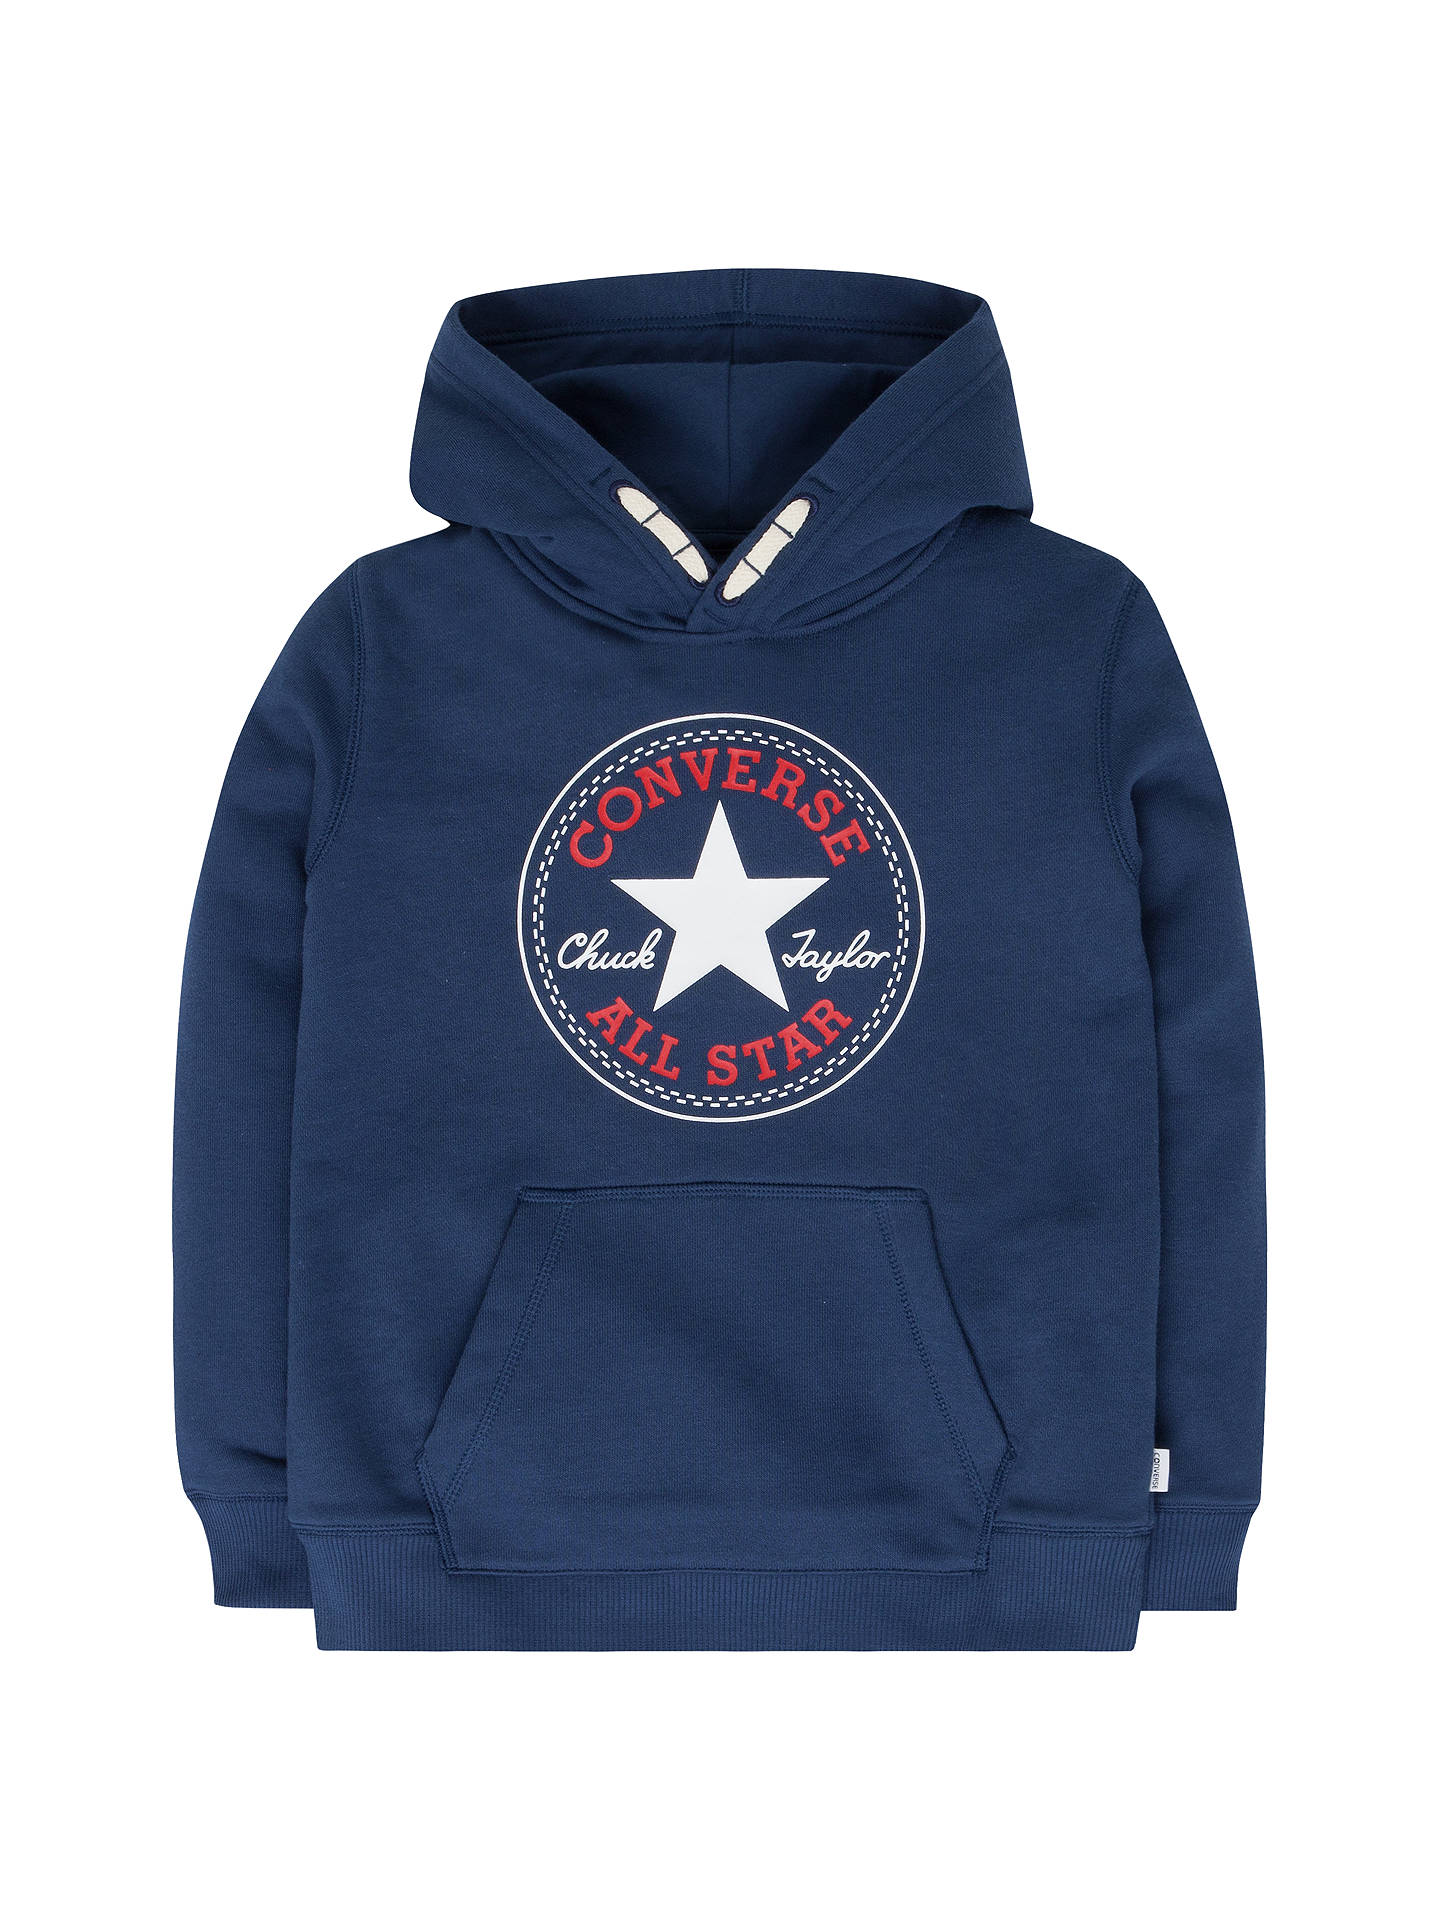 9d9c780b6 Buy Converse Boys' Core Pullover Hoodie, Navy, 3-4 years Online at